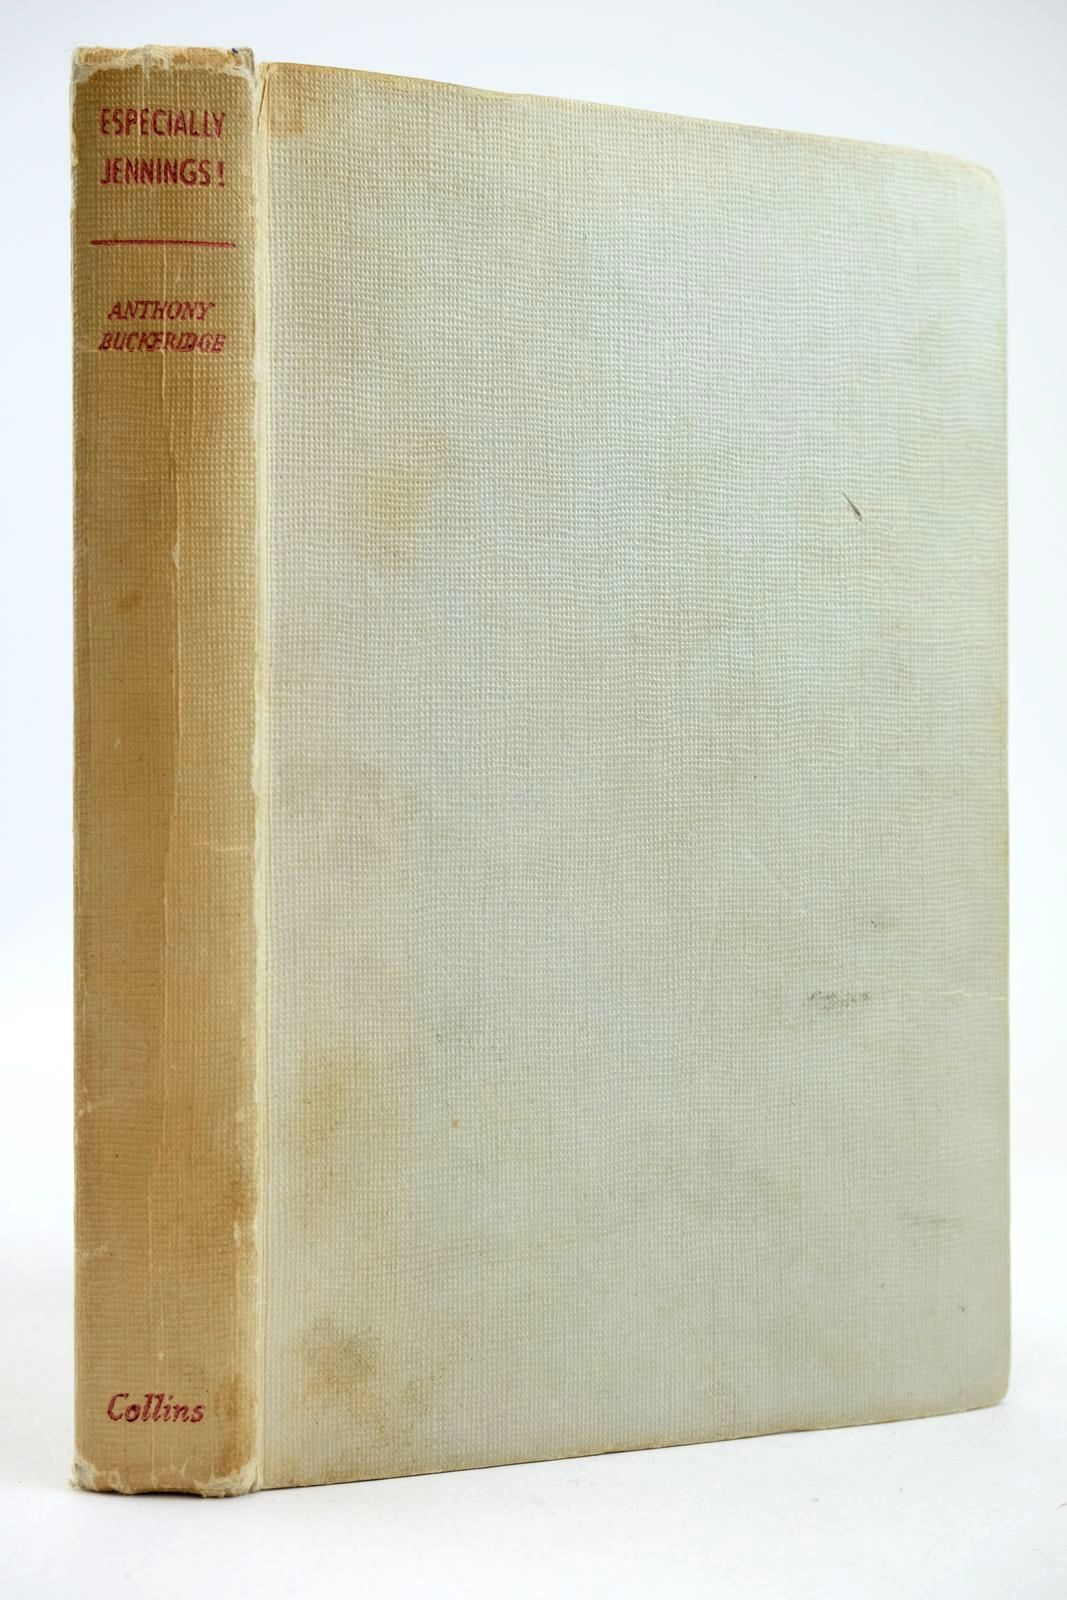 Photo of ESPECIALLY JENNINGS! written by Buckeridge, Anthony illustrated by Mays,  published by Collins (STOCK CODE: 2132714)  for sale by Stella & Rose's Books